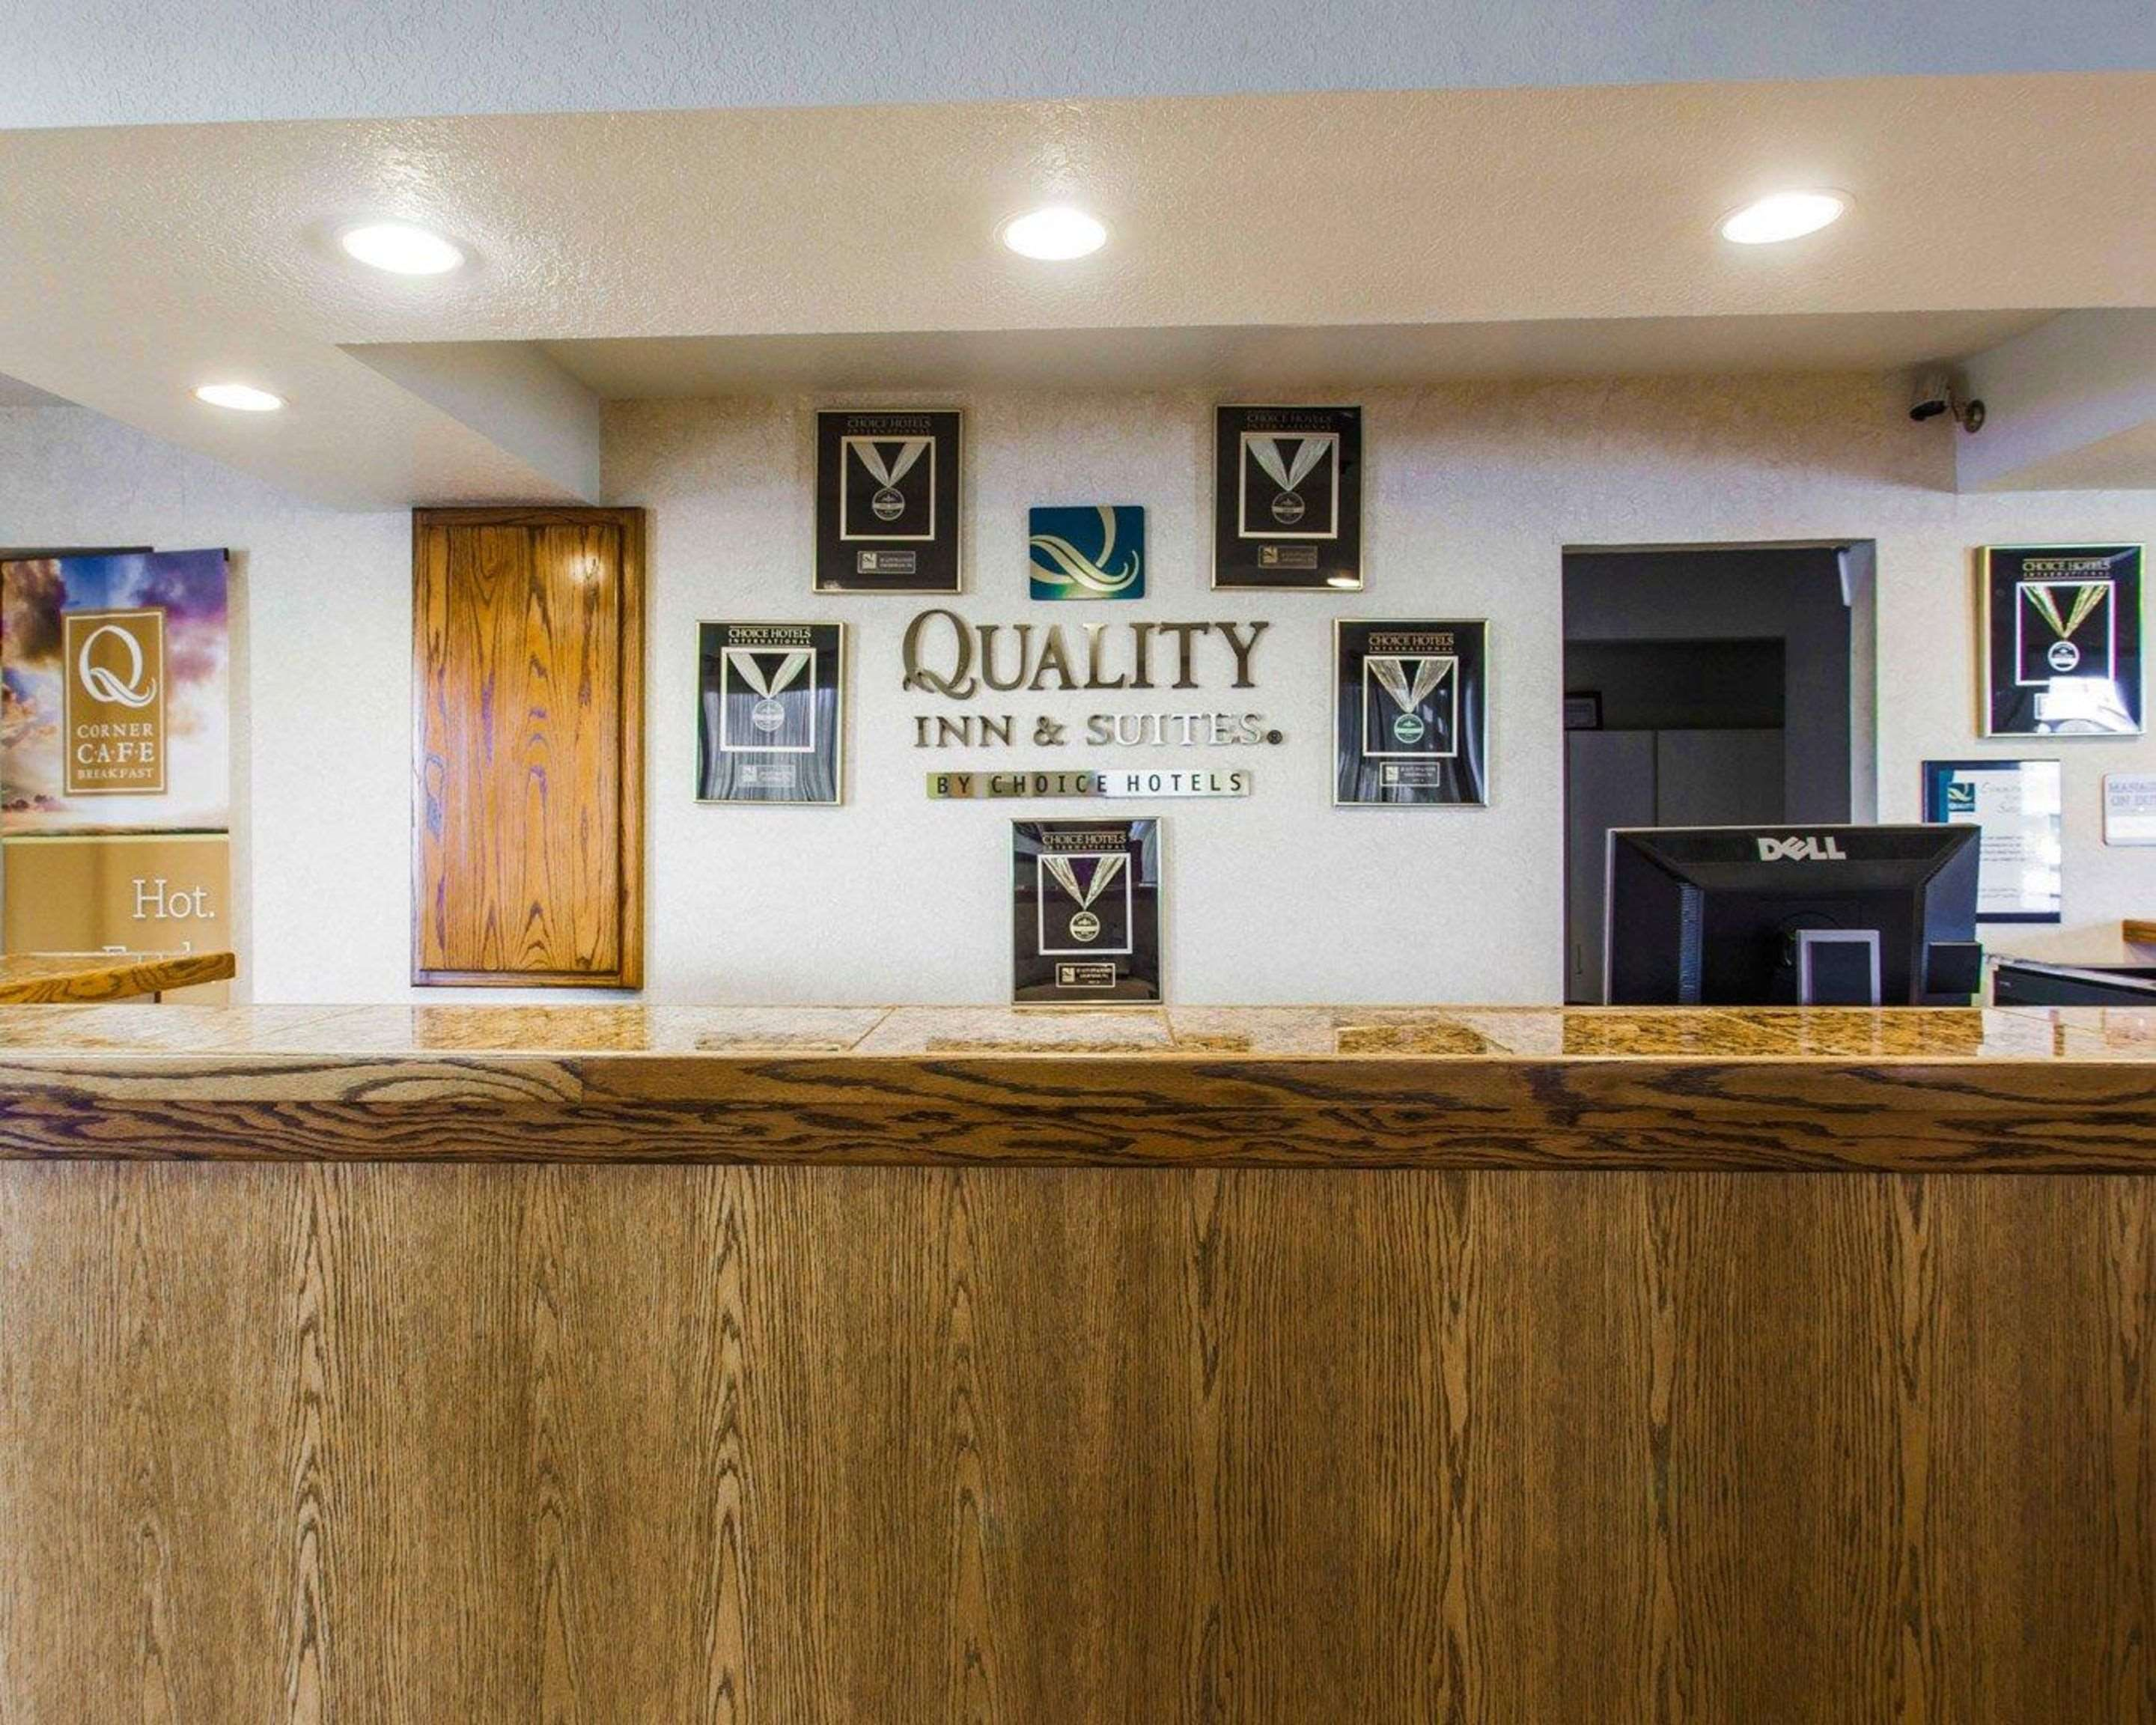 Quality Inn & Suites Goldendale in Goldendale, WA, photo #5